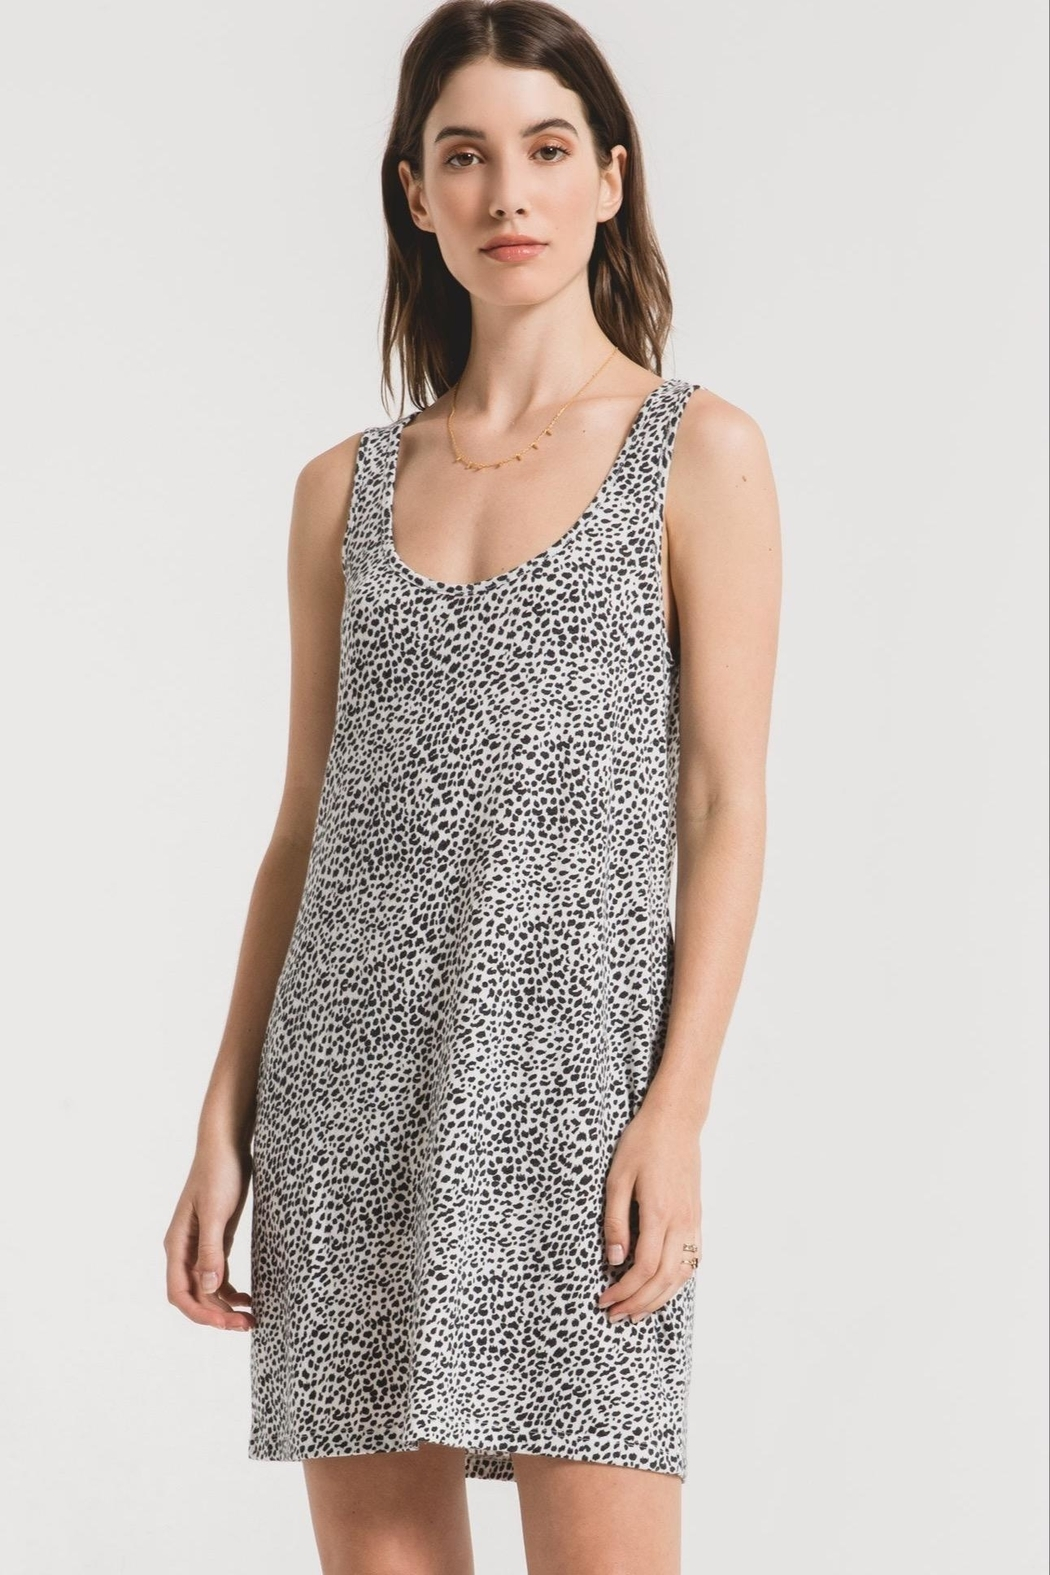 z supply Leopard Tank Dress - Front Full Image